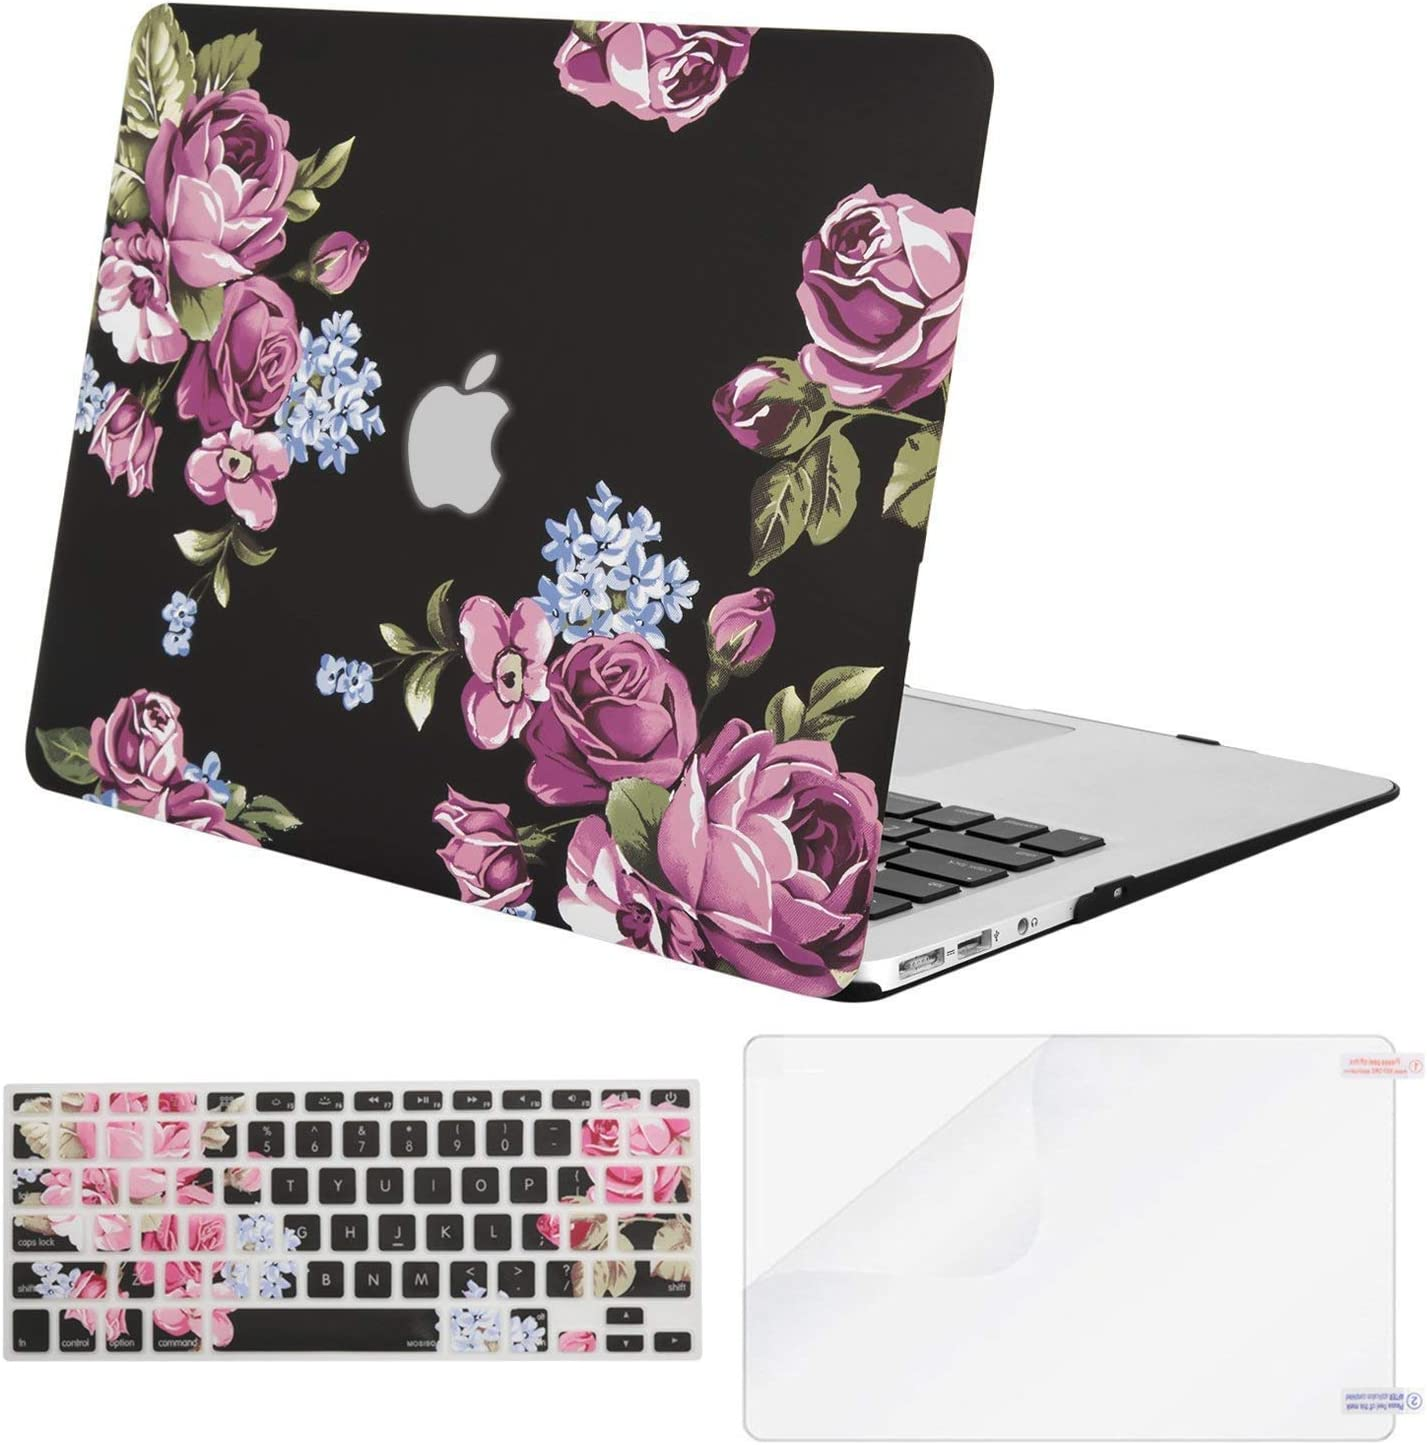 A1369 /& A1466, 2010-2017 Release Compatible with MacBook Air 13 inch Hard Plastic Shell Cover Case Butterfly Floral Pattern